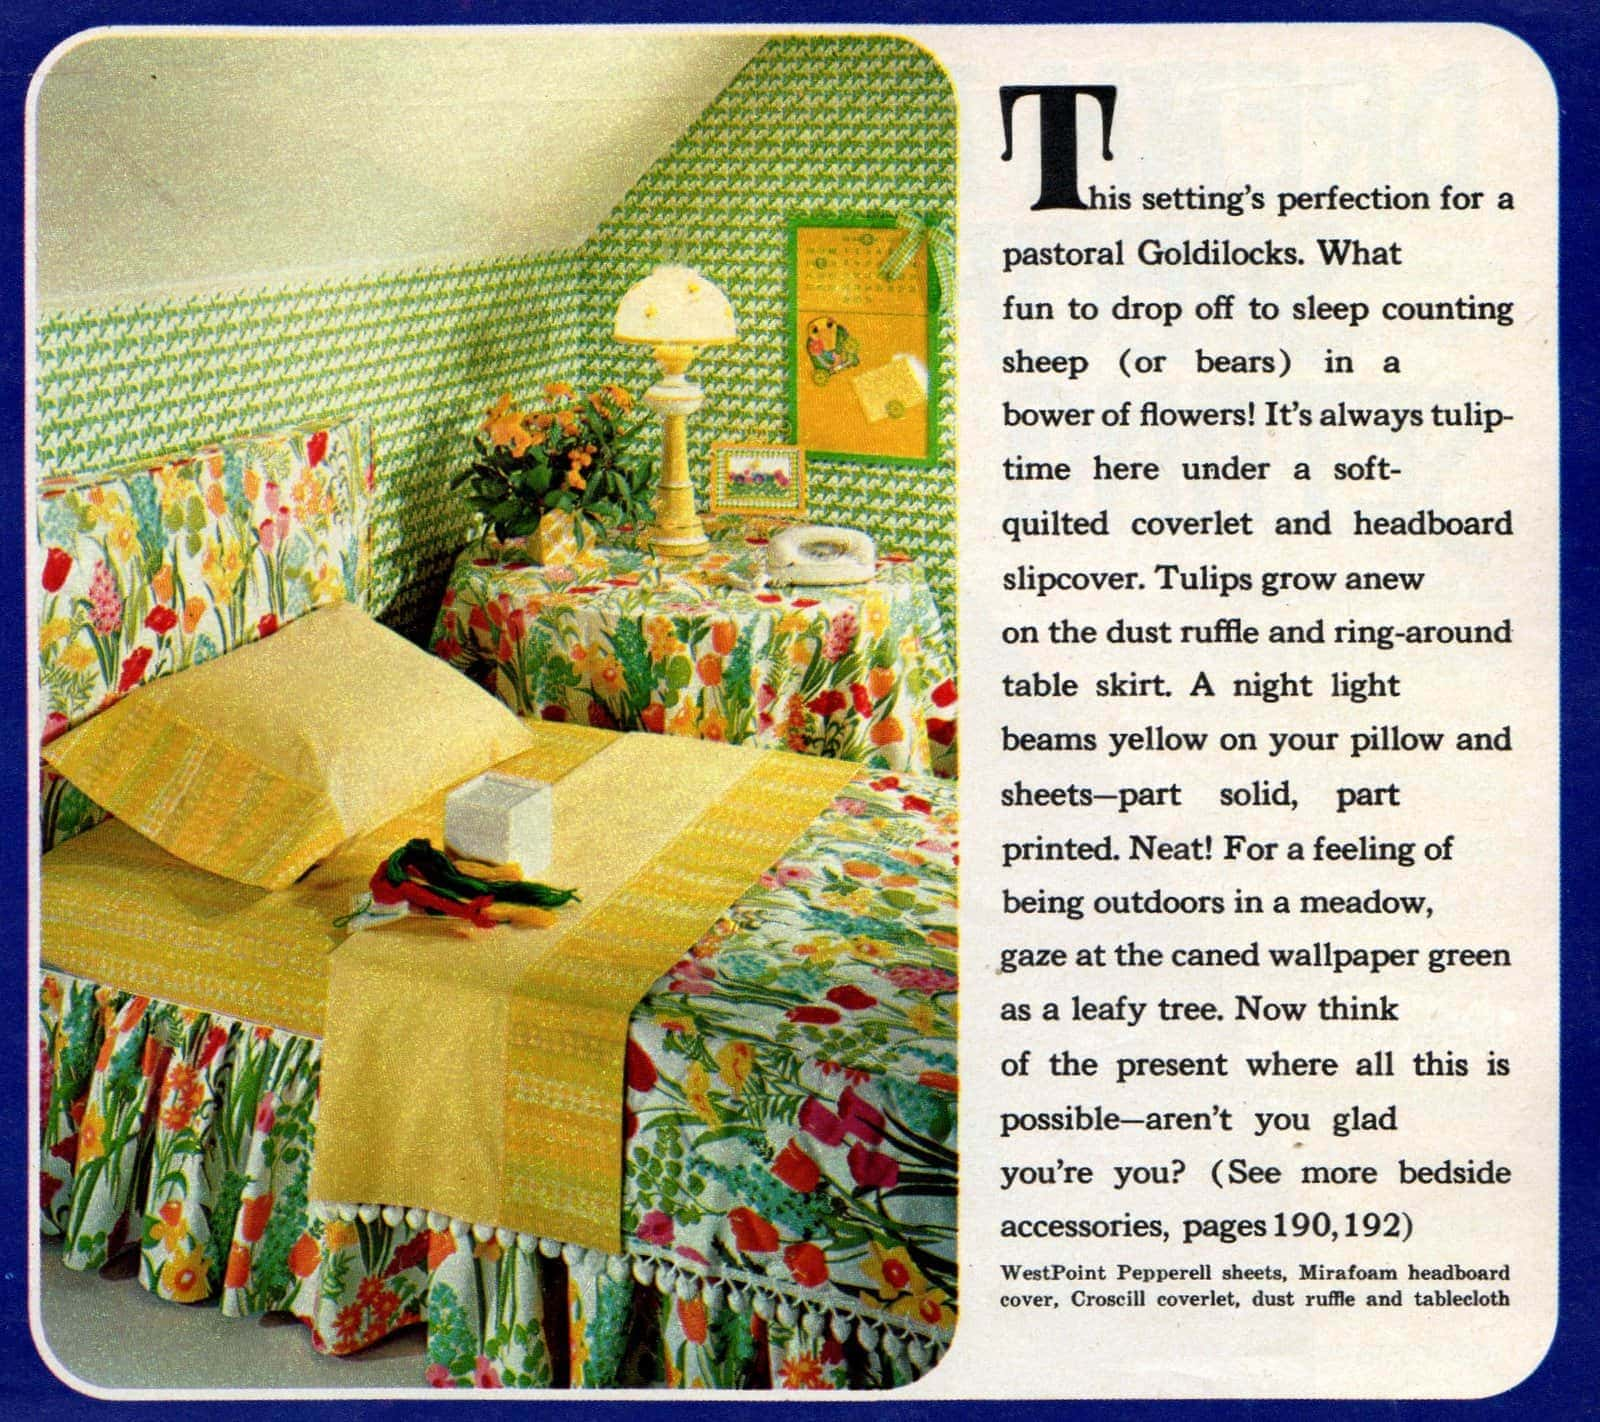 Groovy bedroom decorating ideas from 1970 (2)